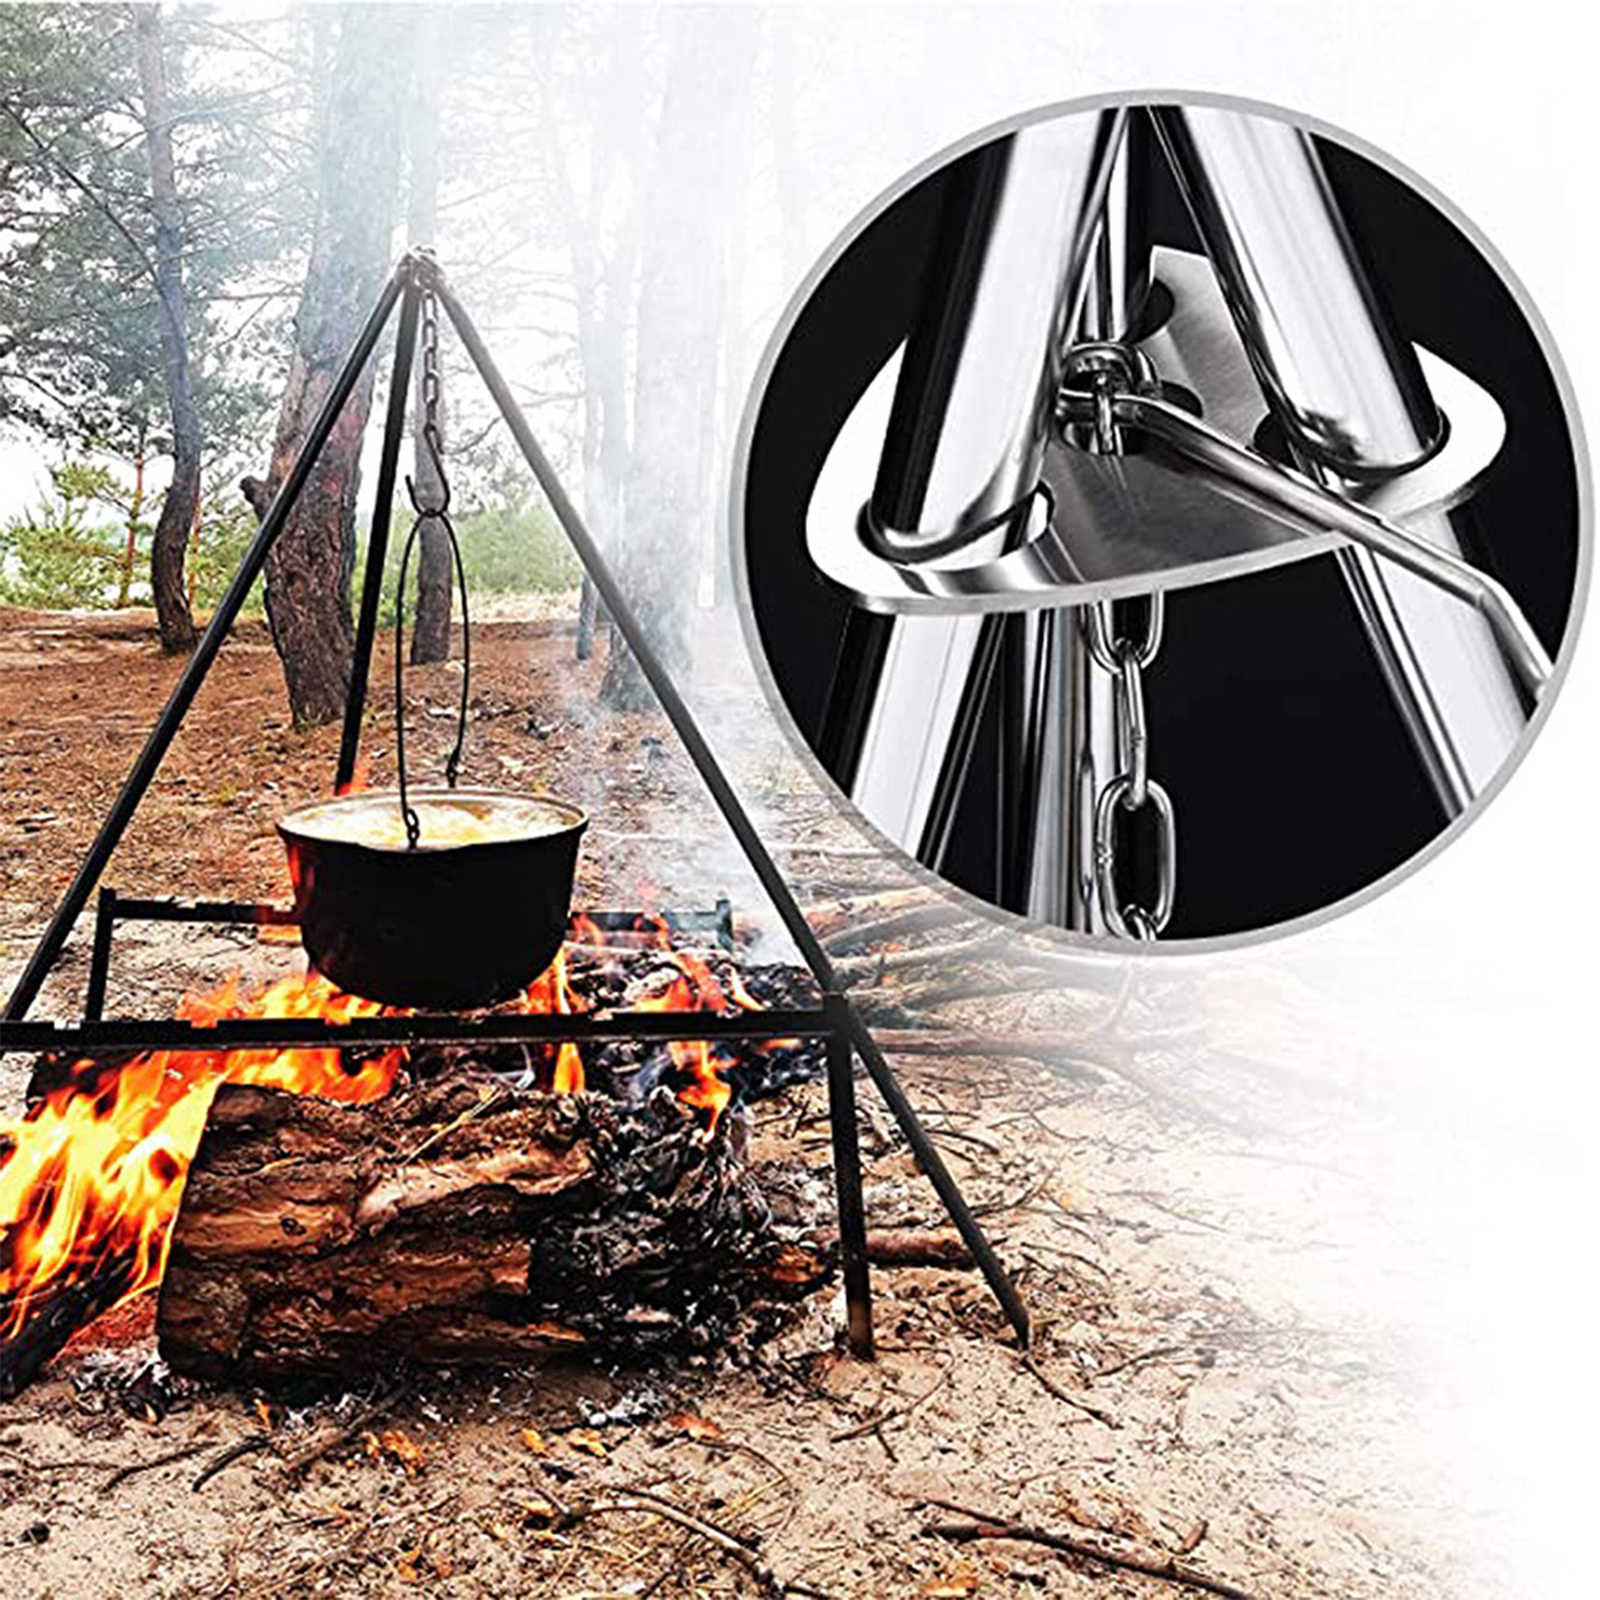 Cooking Camping Campfire Tripod with Storage Bag Aluminium Alloy 80 cm Height Folds Removable Portable Stand Tool Outdoor